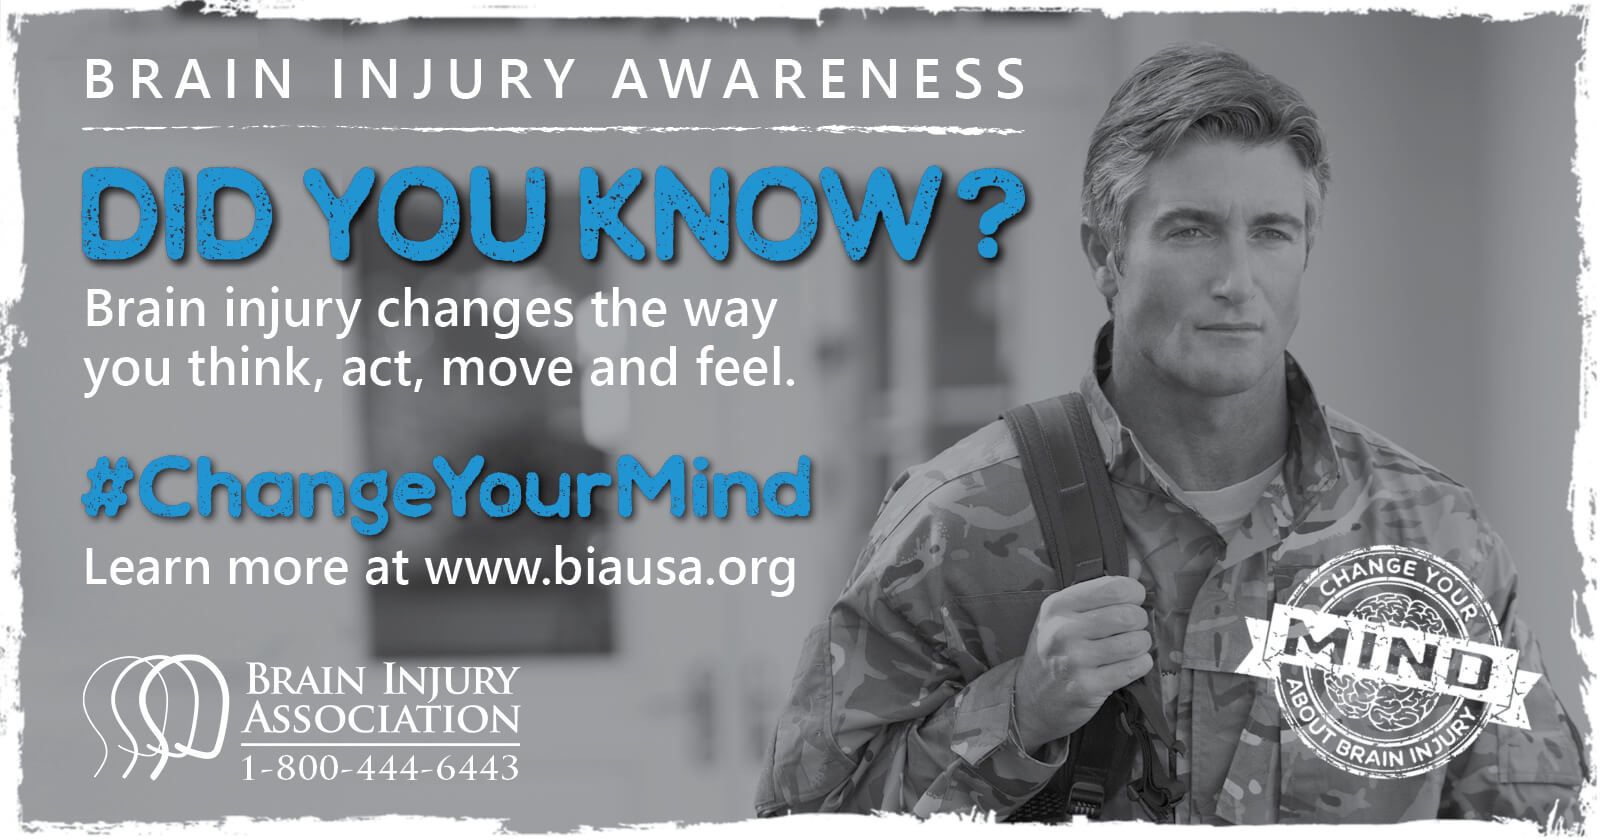 Brain injury changes the way you think, move, act, and feel.